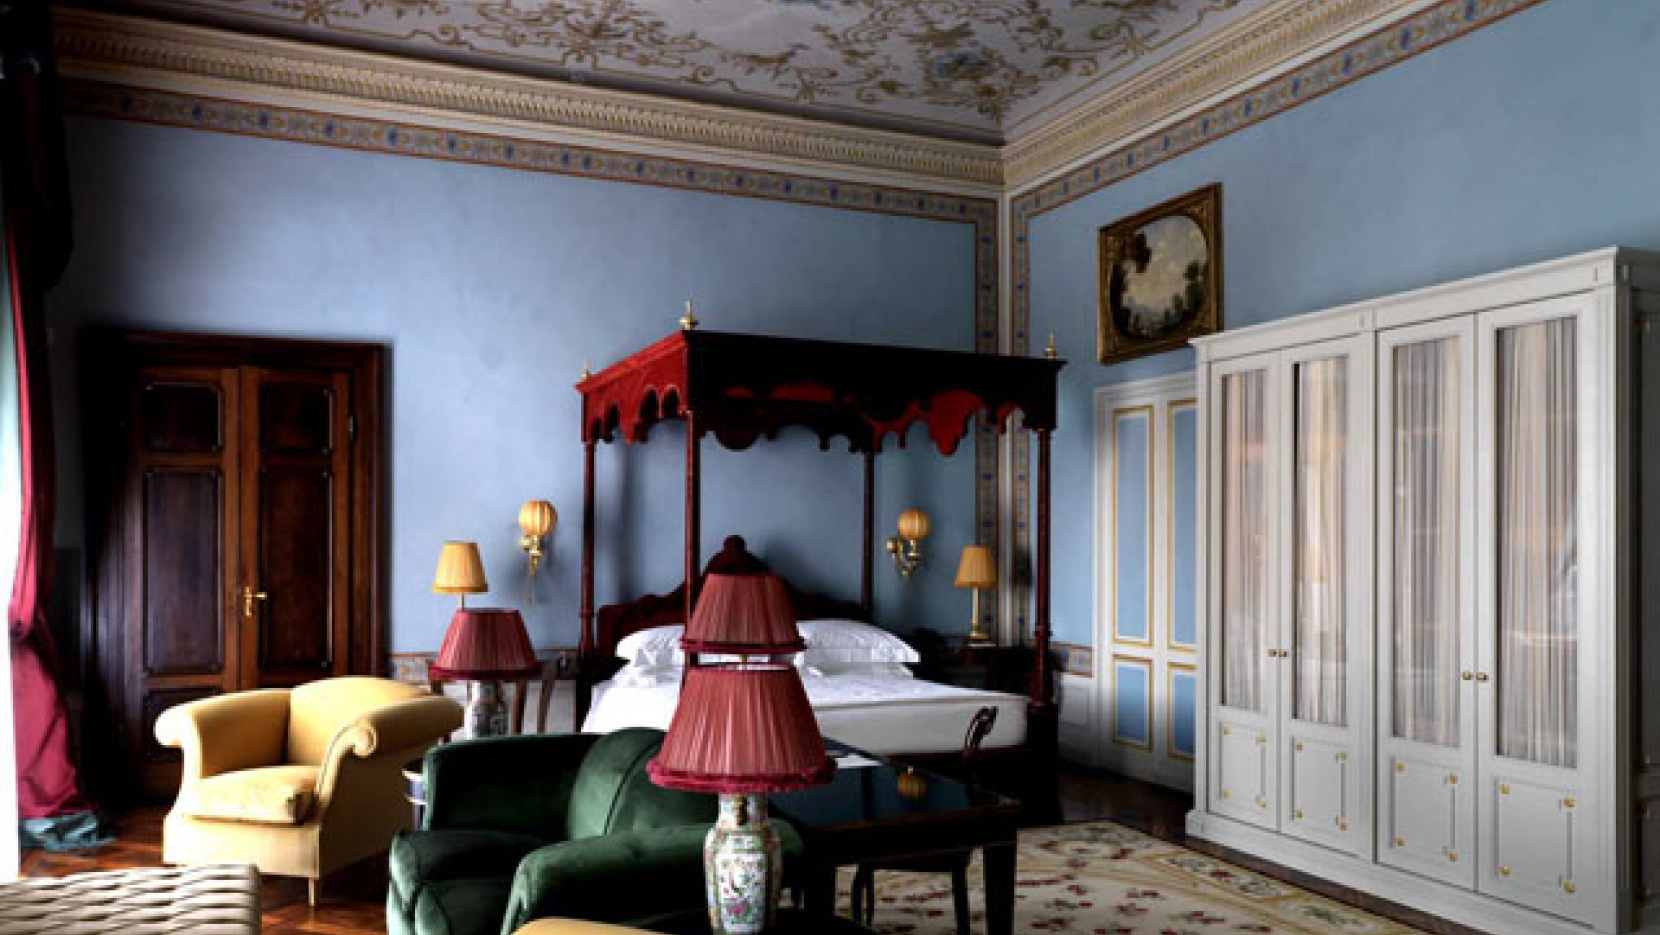 Grand hotel villa cora in florence italy yatzer for Design hotel florence